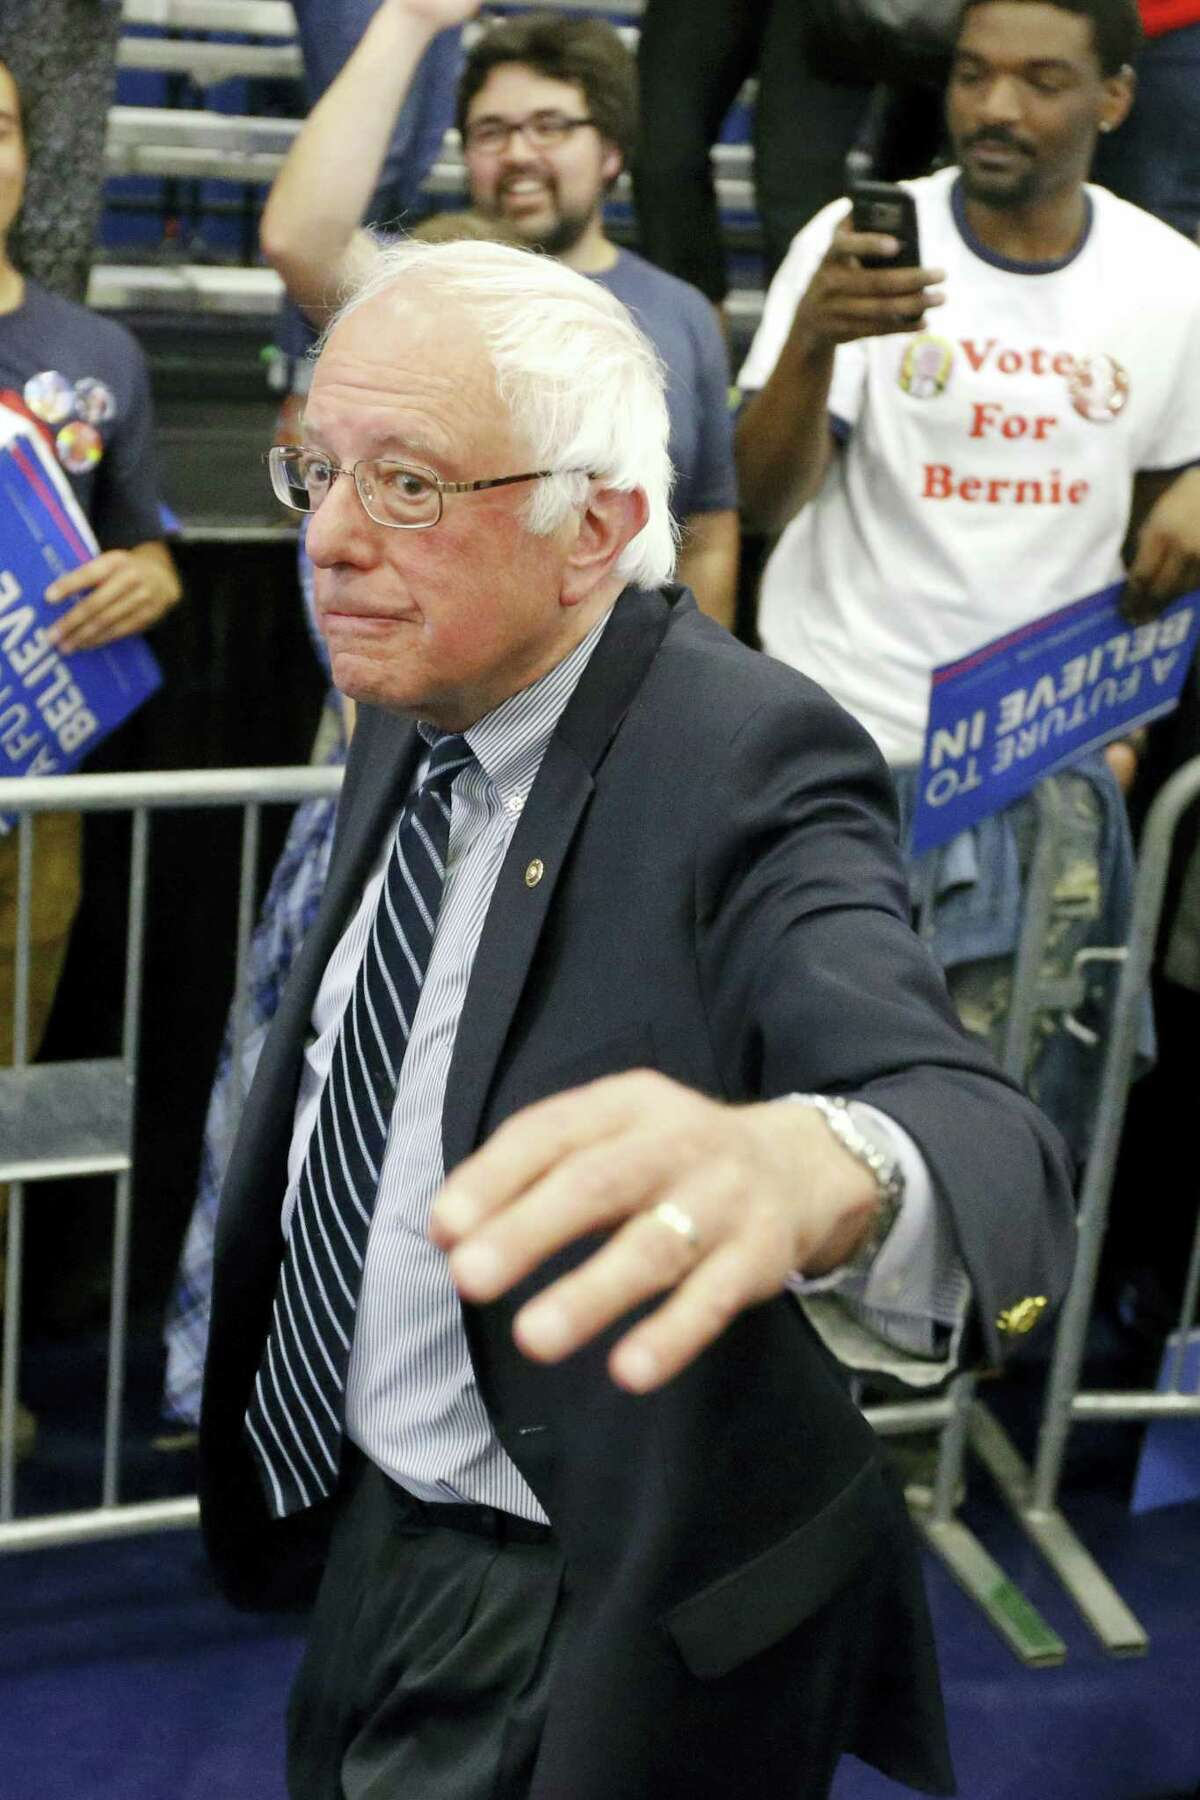 Democratic presidential candidate Sen. Bernie Sanders, I-Vt., waves as he leves a campaign rally at Fitzgerald Fieldhouse on the University of Pittsburgh campus, Monday, April 25, 2016, in Pittsburgh.